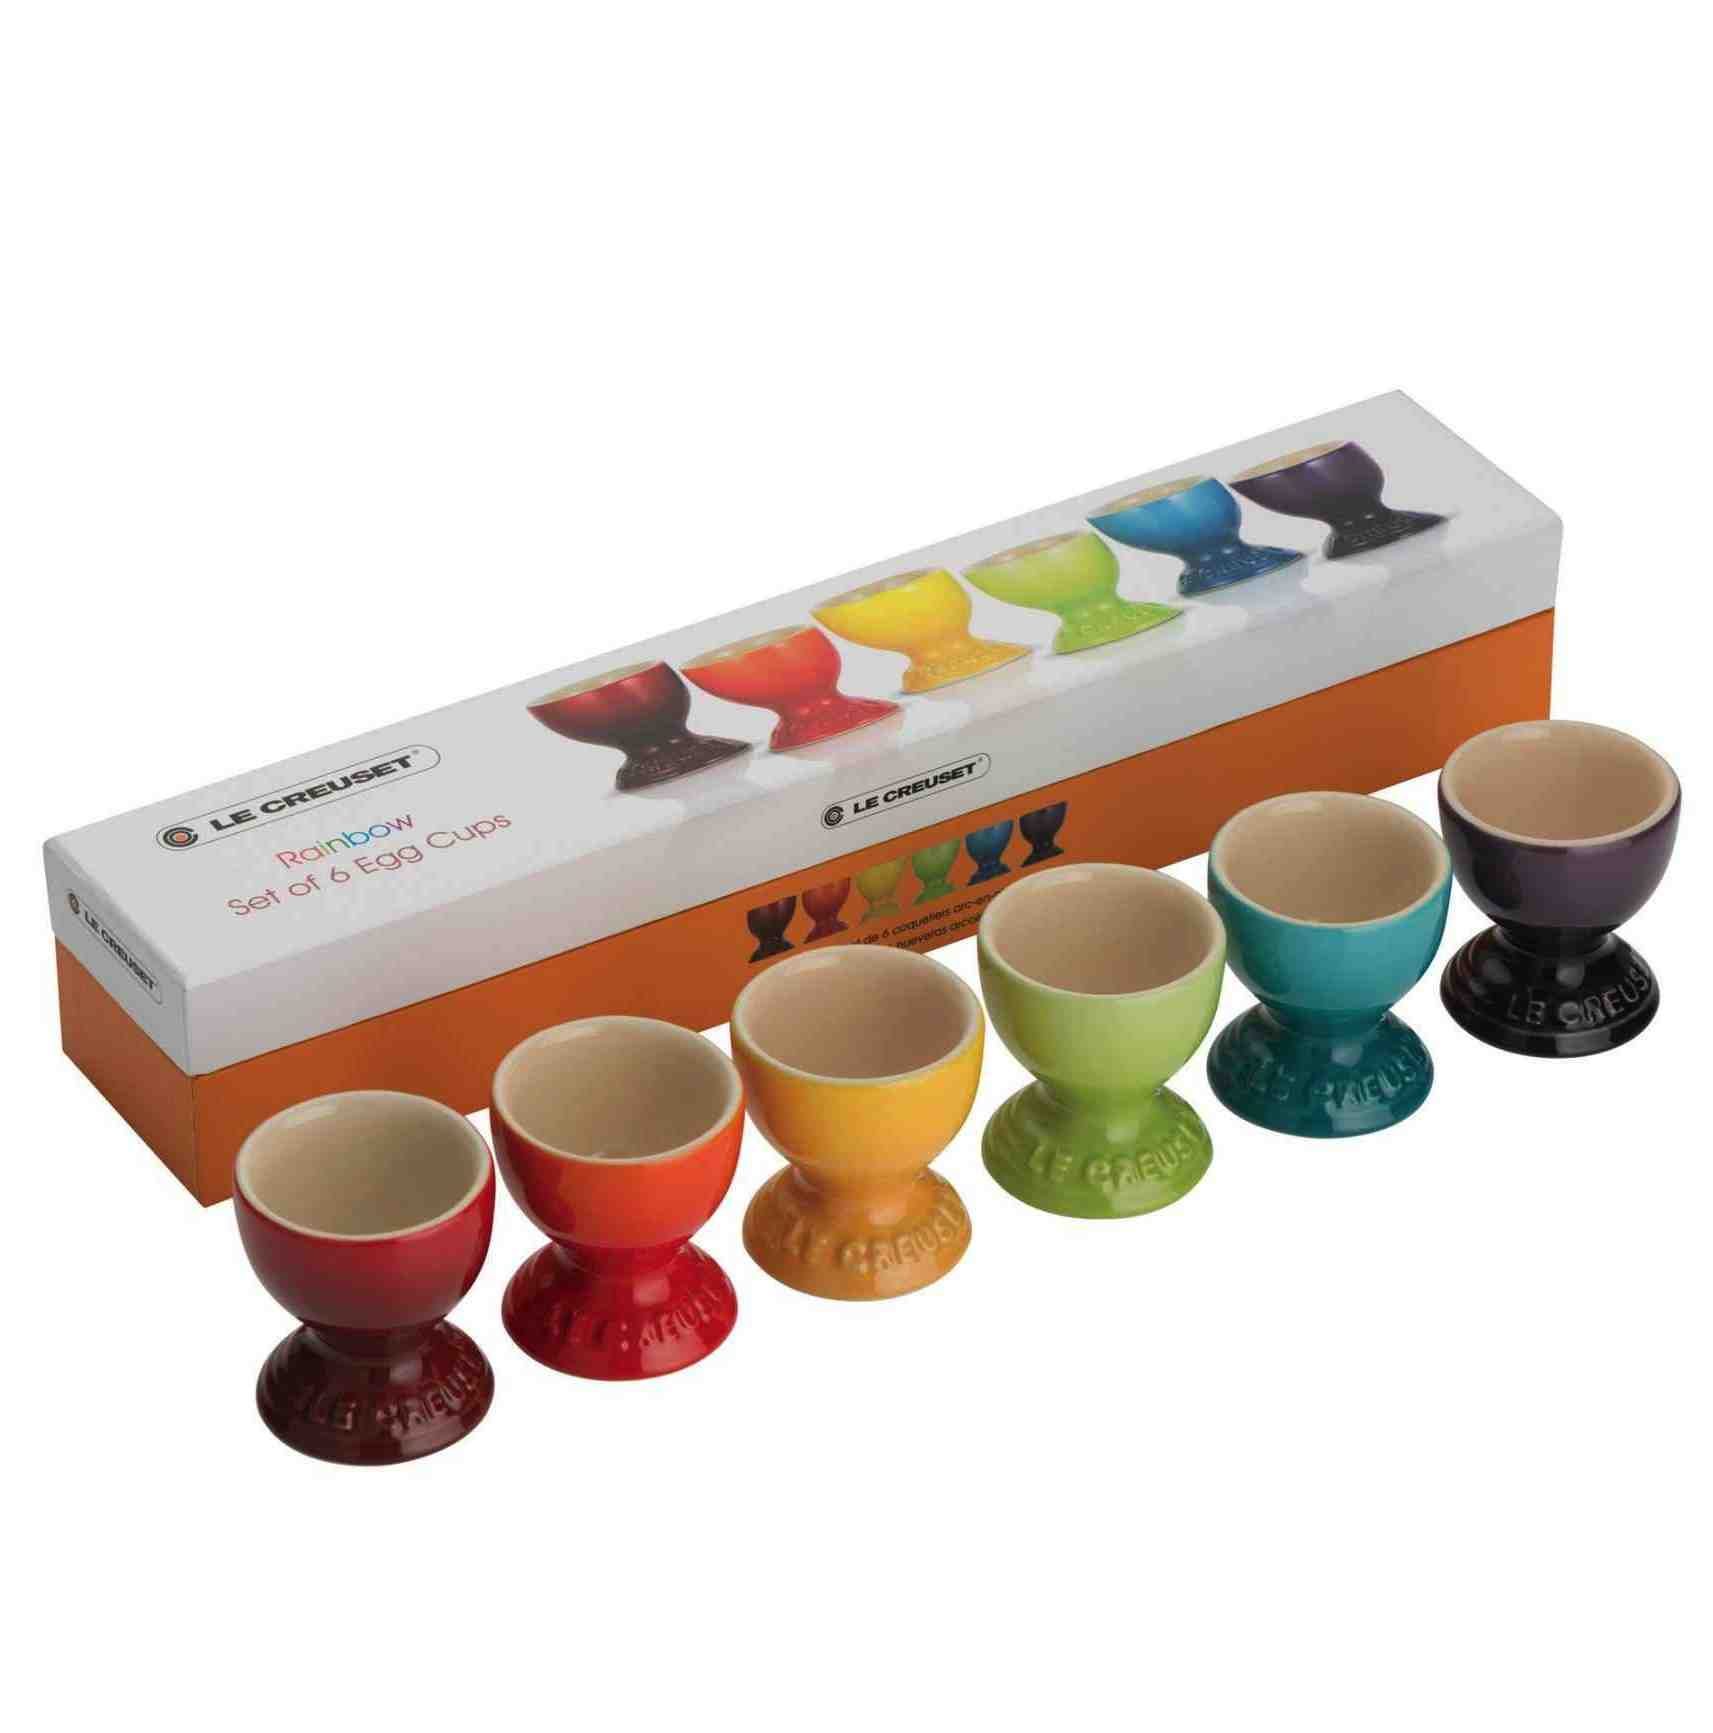 Le Creuset Egg Cups | Set of 6